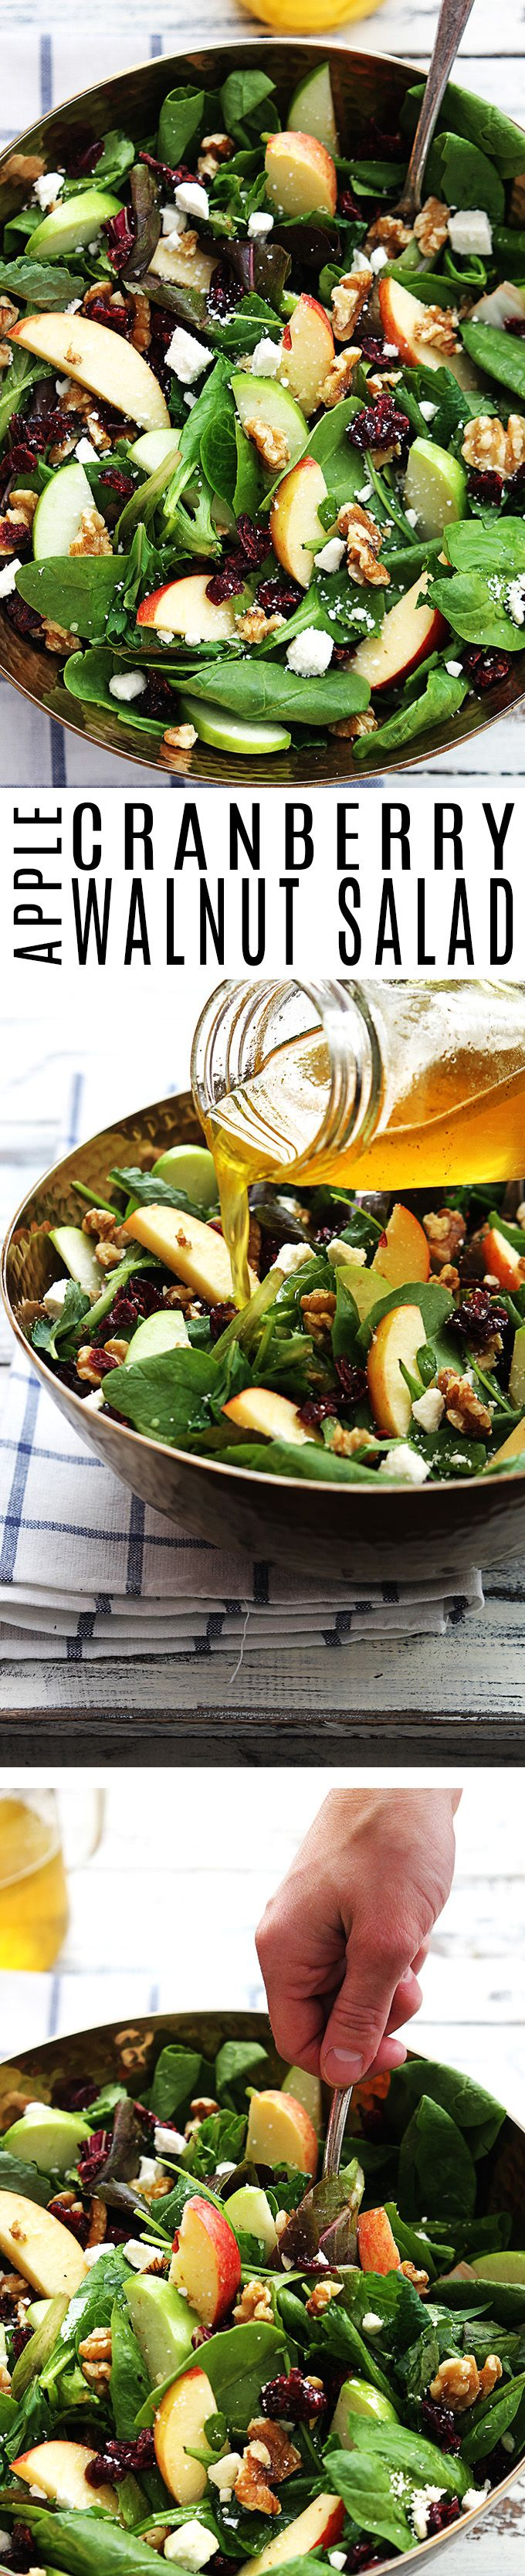 Apple Cranberry Walnut Salad ~ crisp apples, dried cranberries, feta cheese, and hearty walnuts come together in a fresh autumn salad!